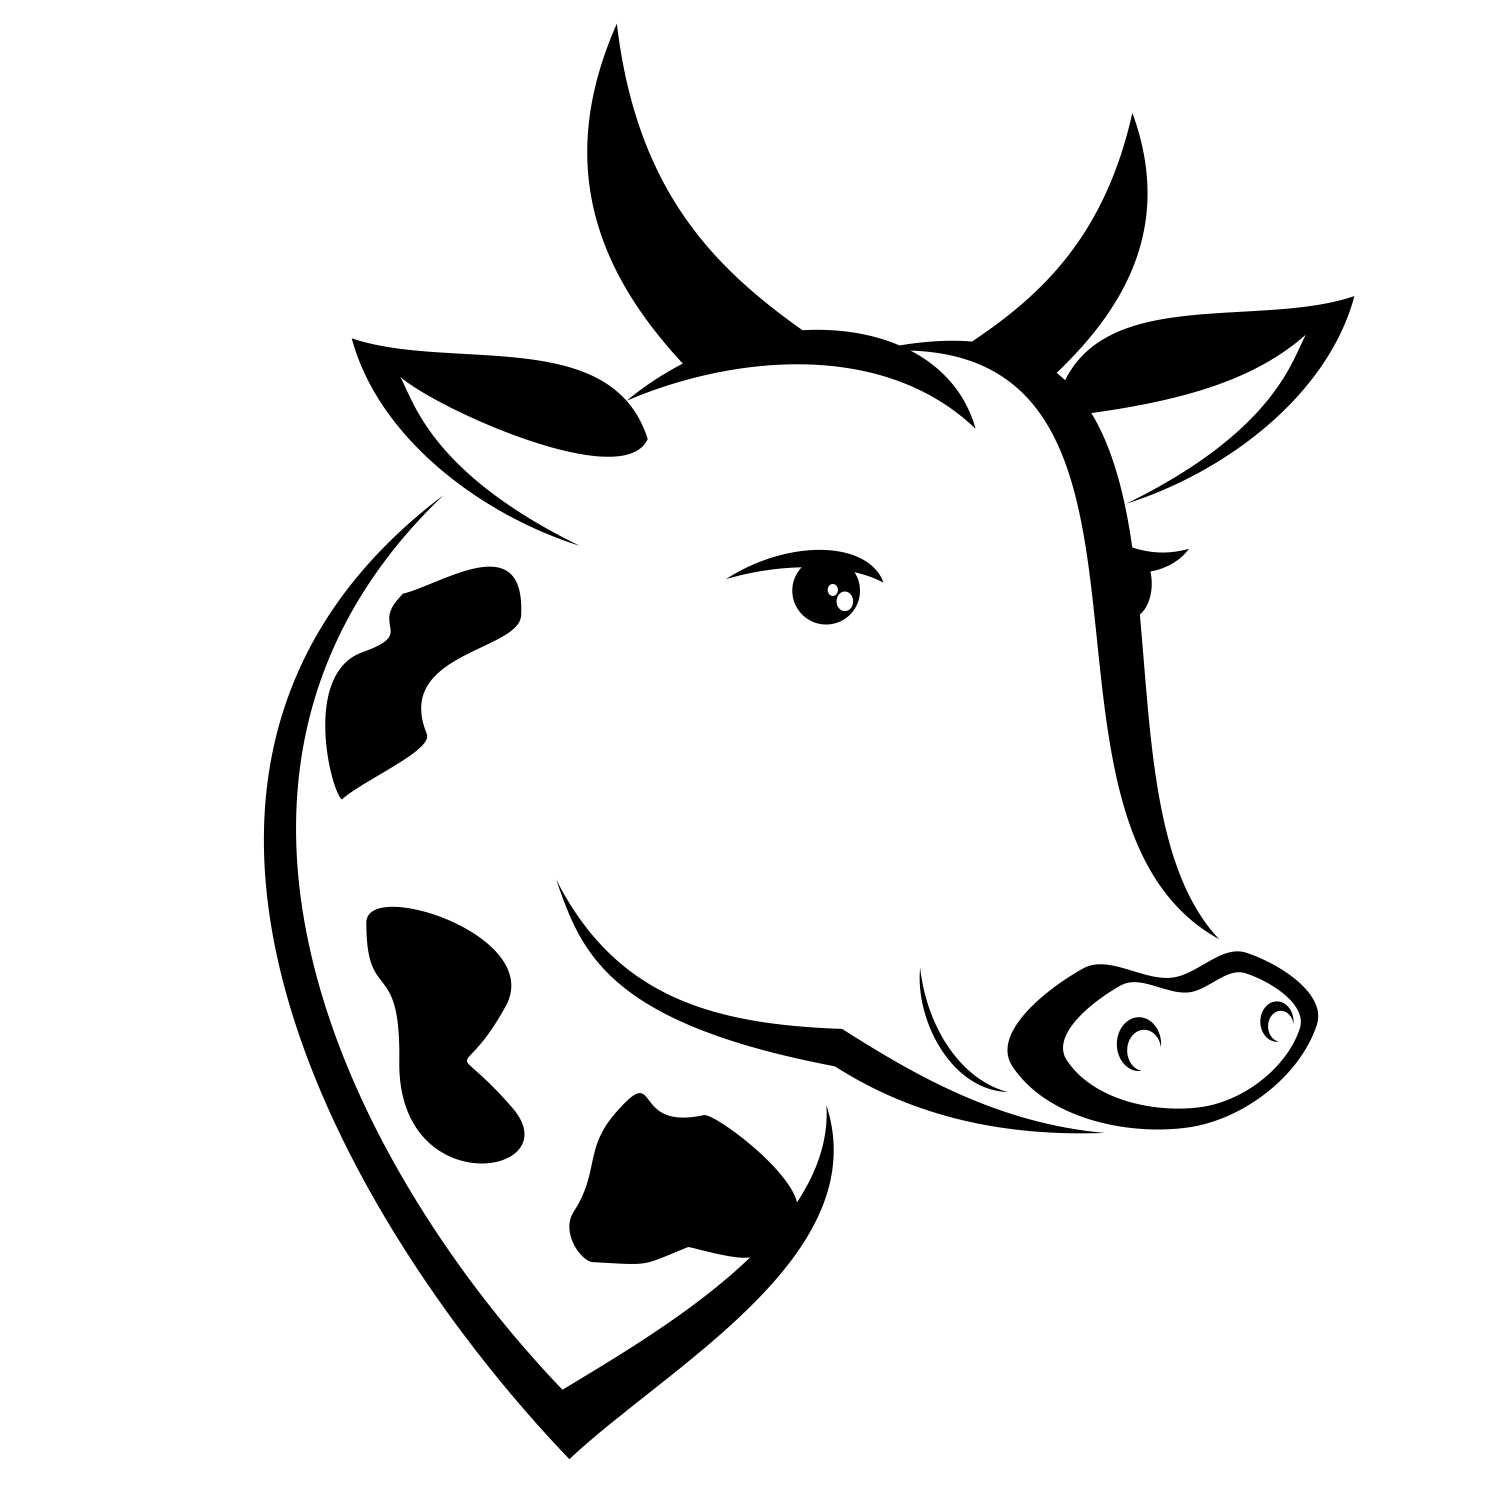 Cow Silhouette Vector At Getdrawings